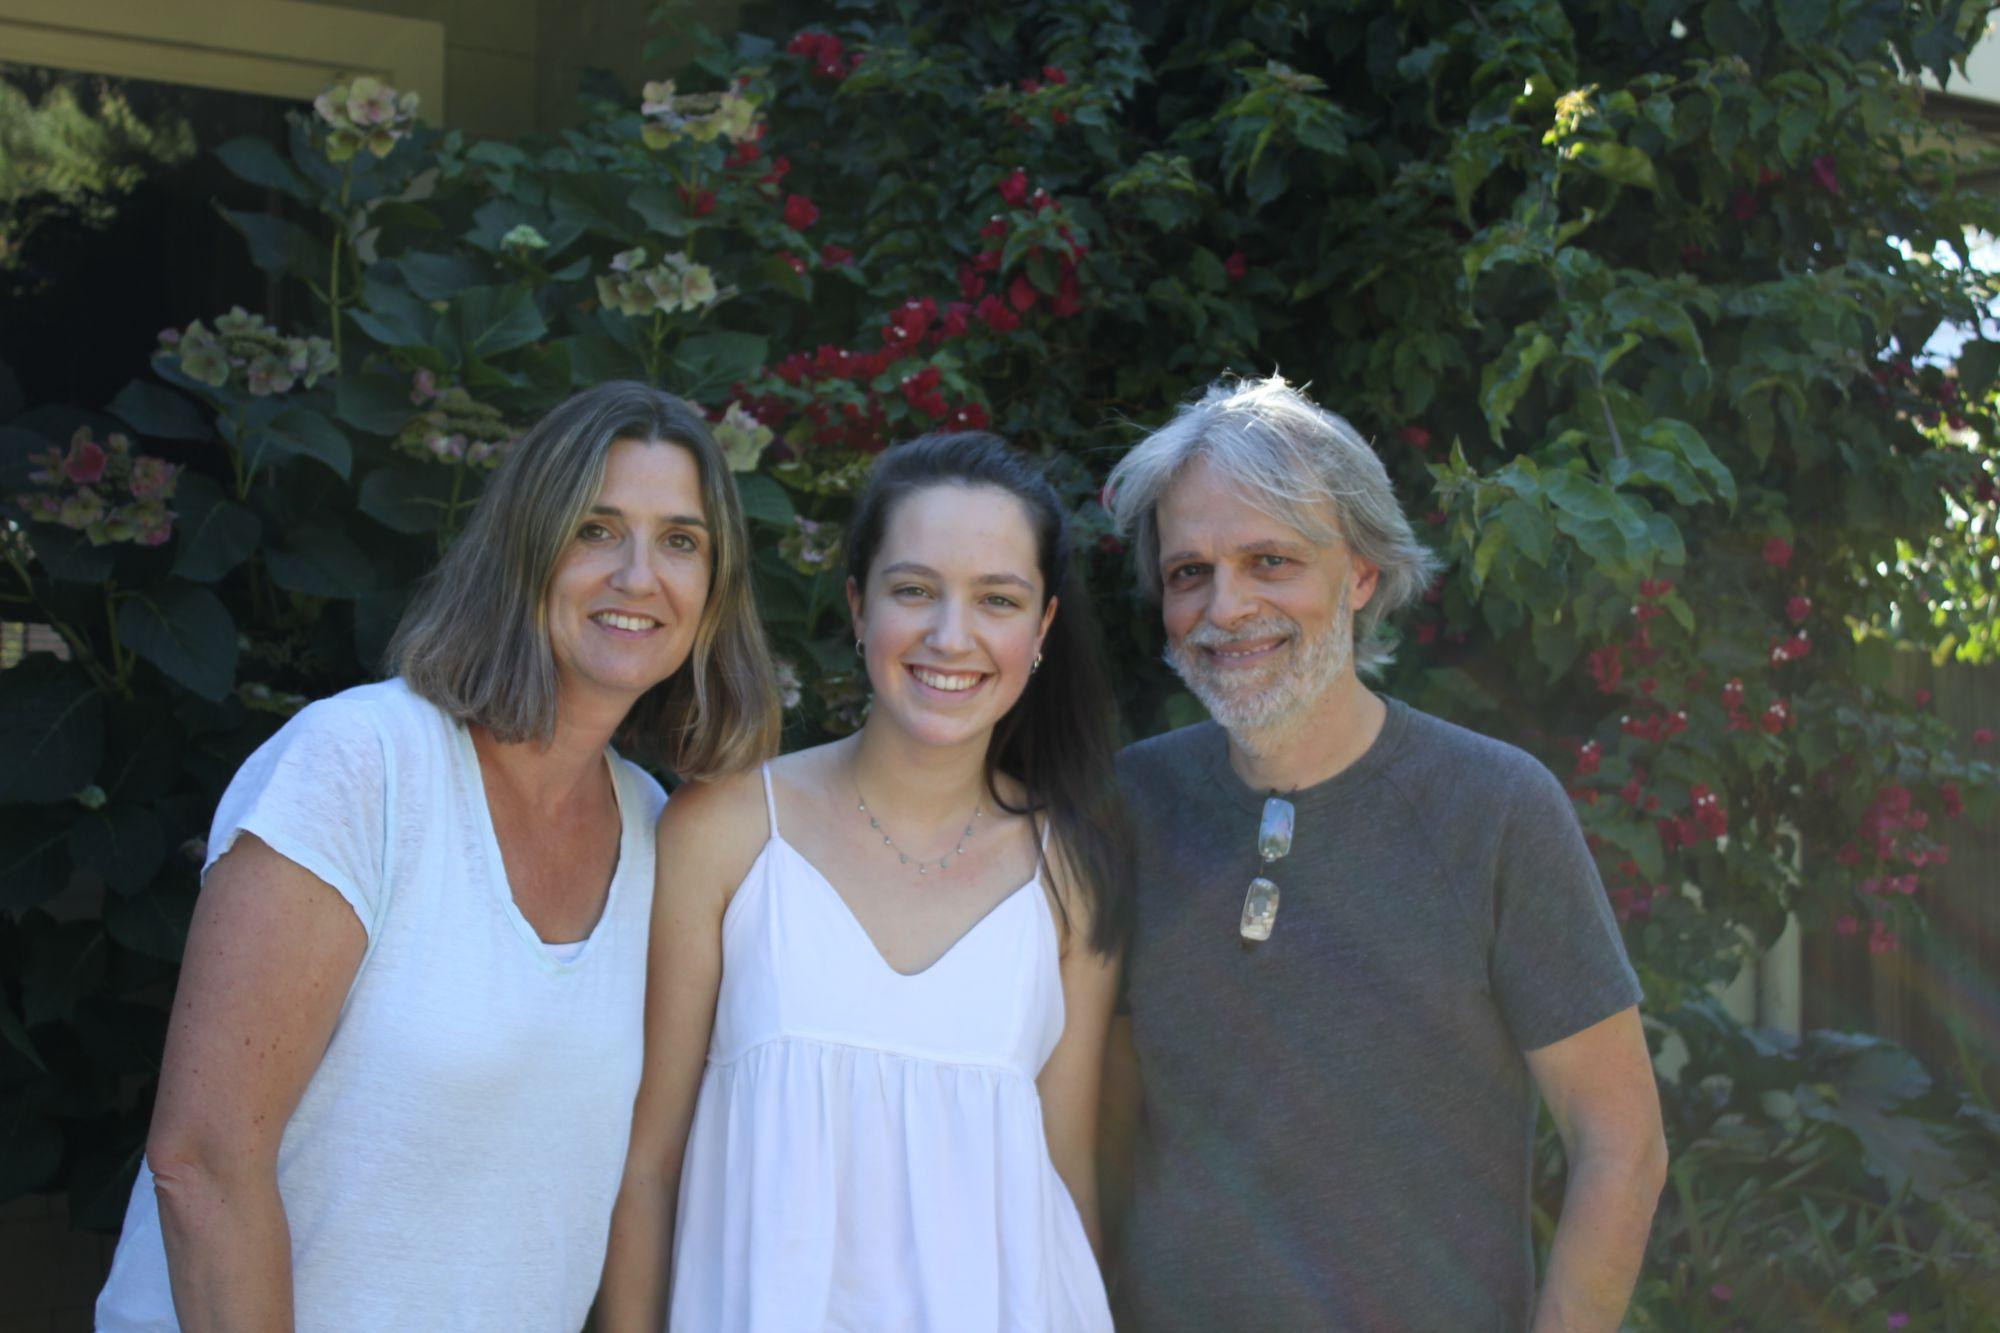 A trip for freedom: Redwood parents fly to Catalonia for referendum